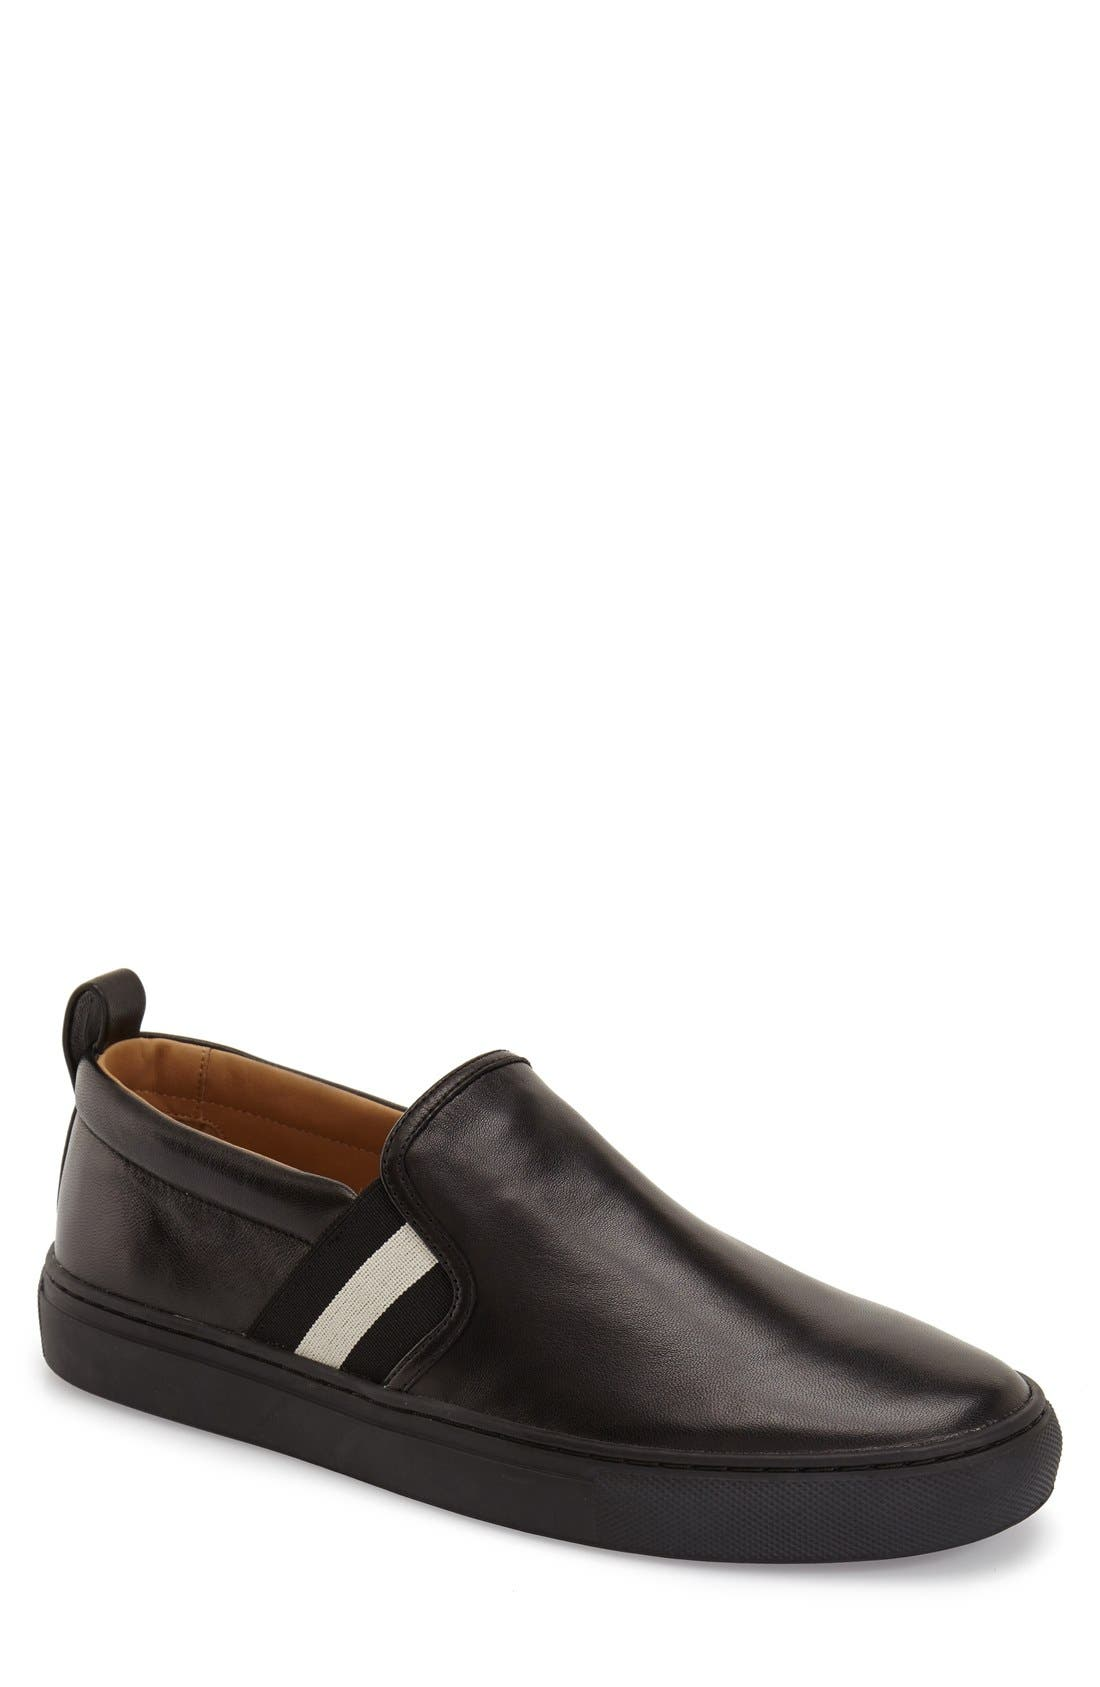 'Herald' Slip-On,                         Main,                         color, BLACK LEATHER